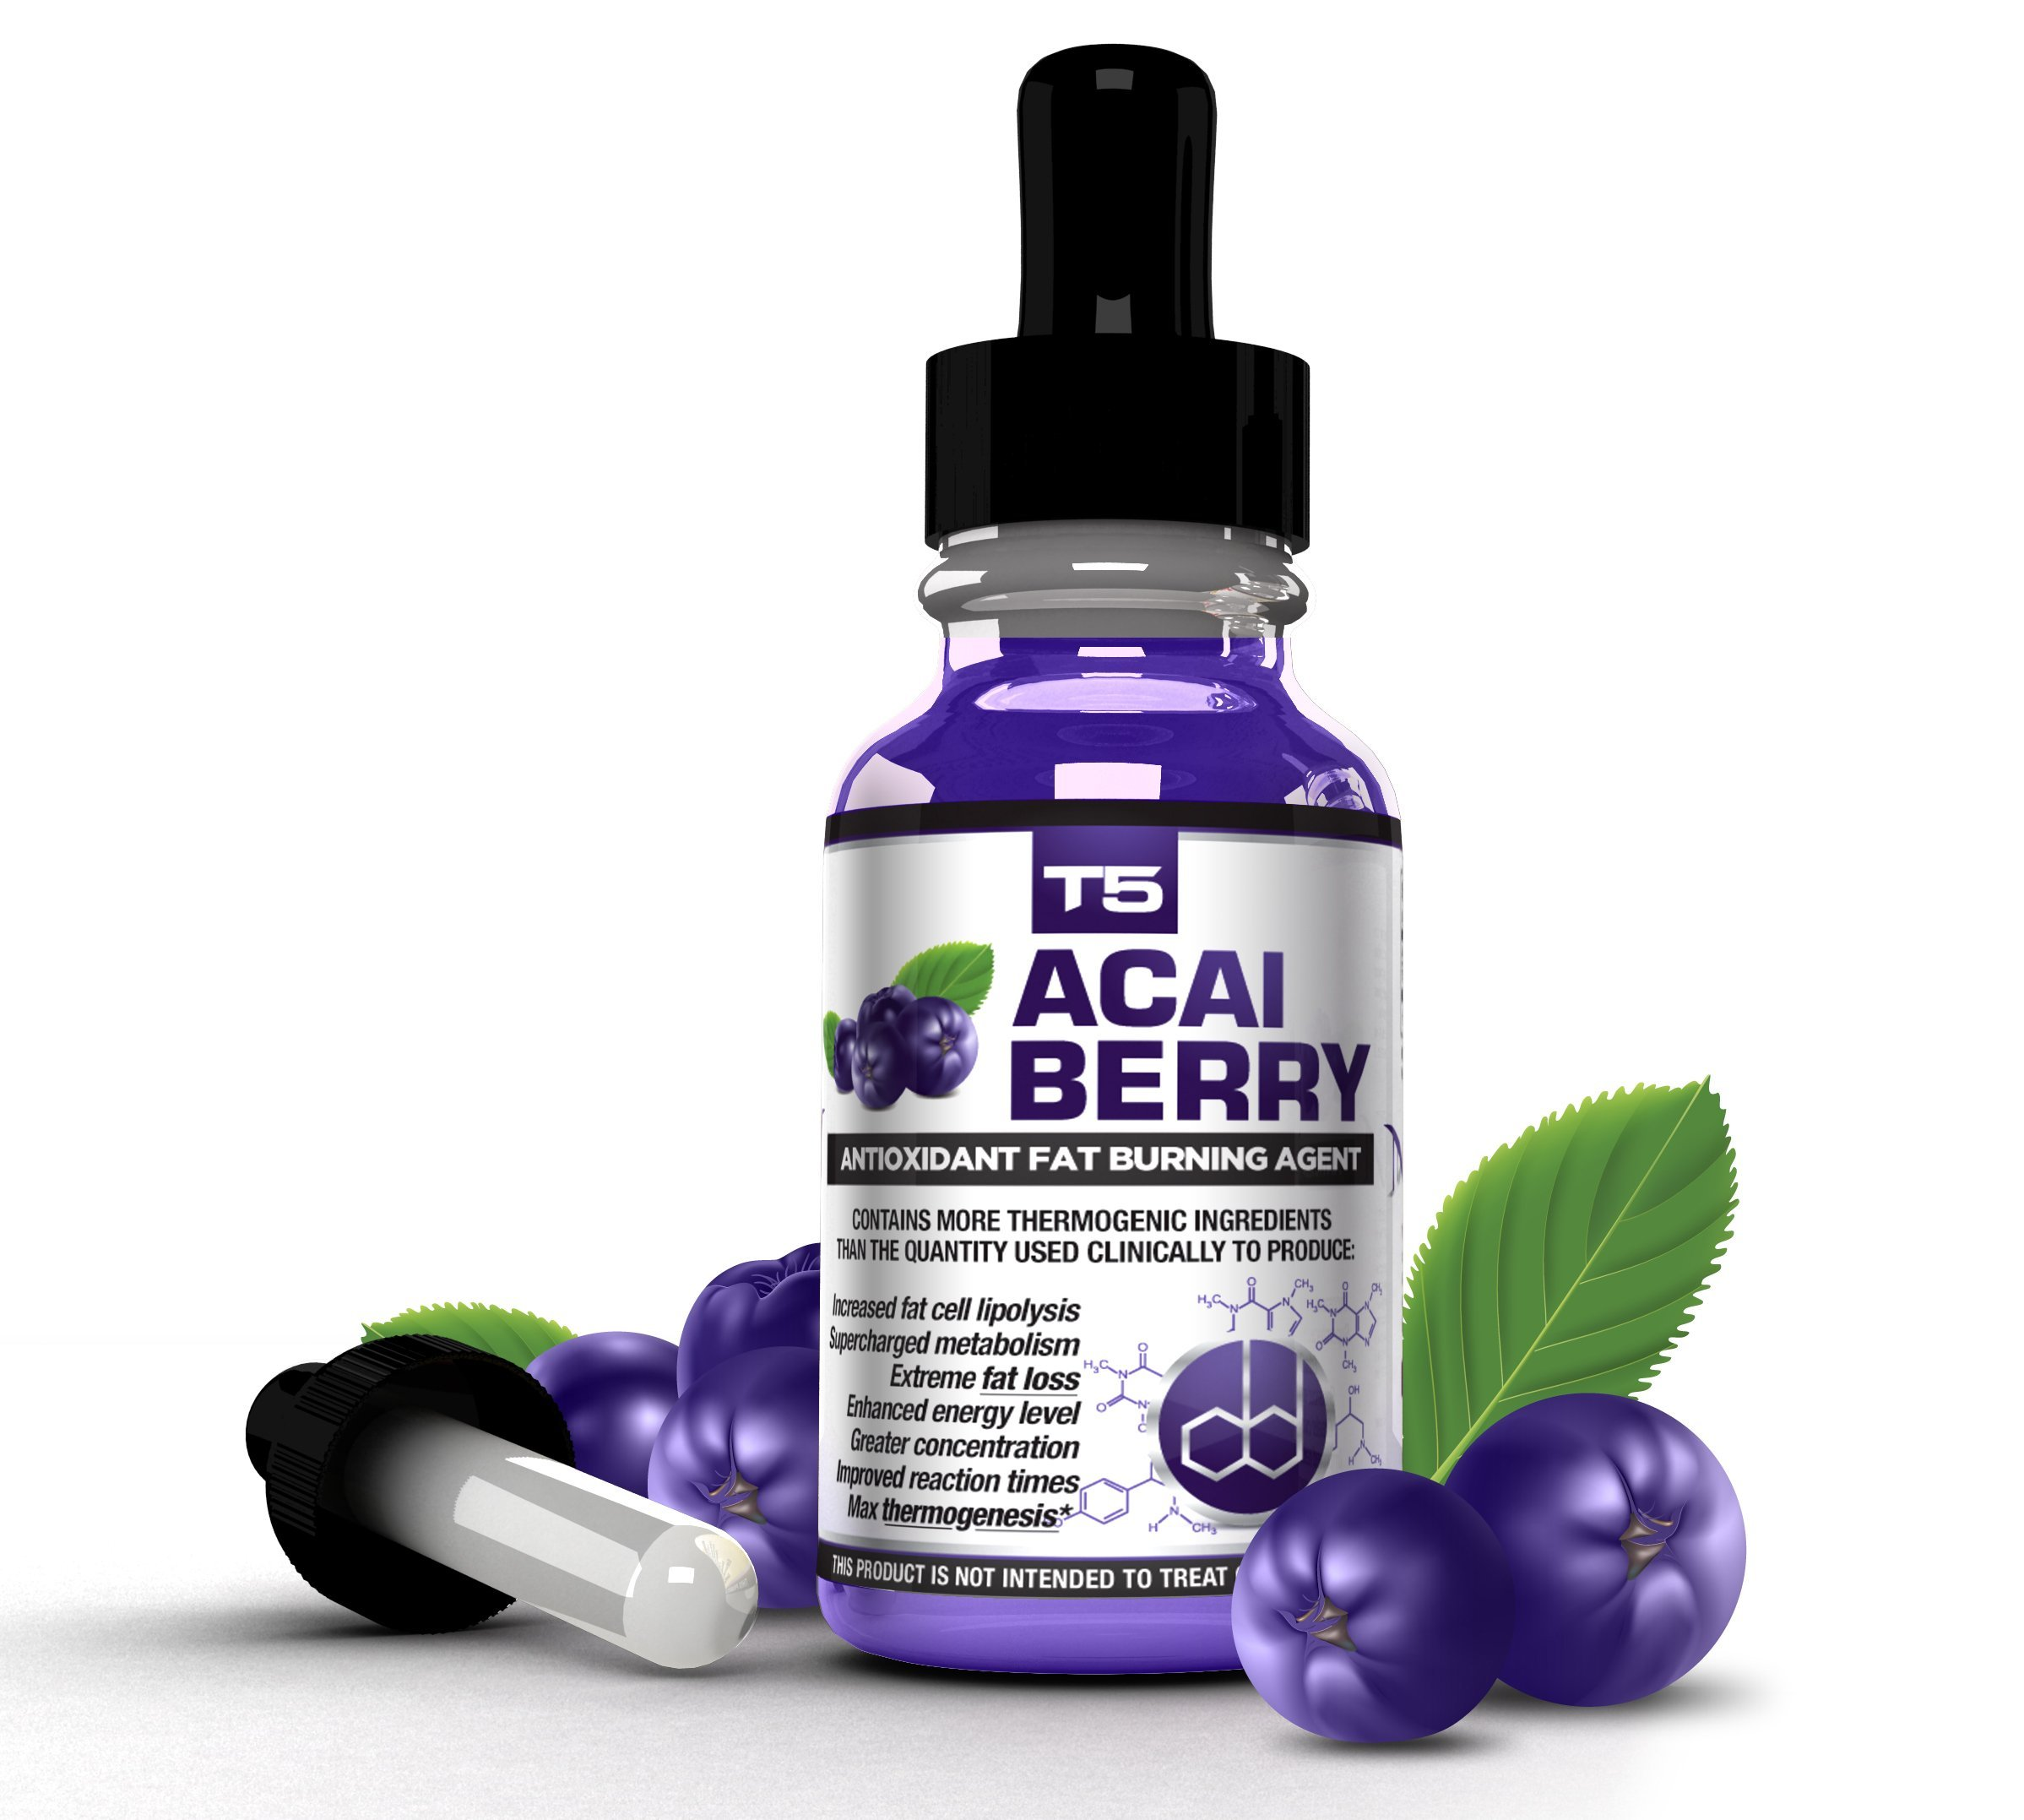 T5 Fat Burners Acai Berry Diet Drops : Maximum Strength Antioxidant Fat Burner - Fast Acting Weight Loss & Detox (1 Month Supply) by T5 Fat Burners